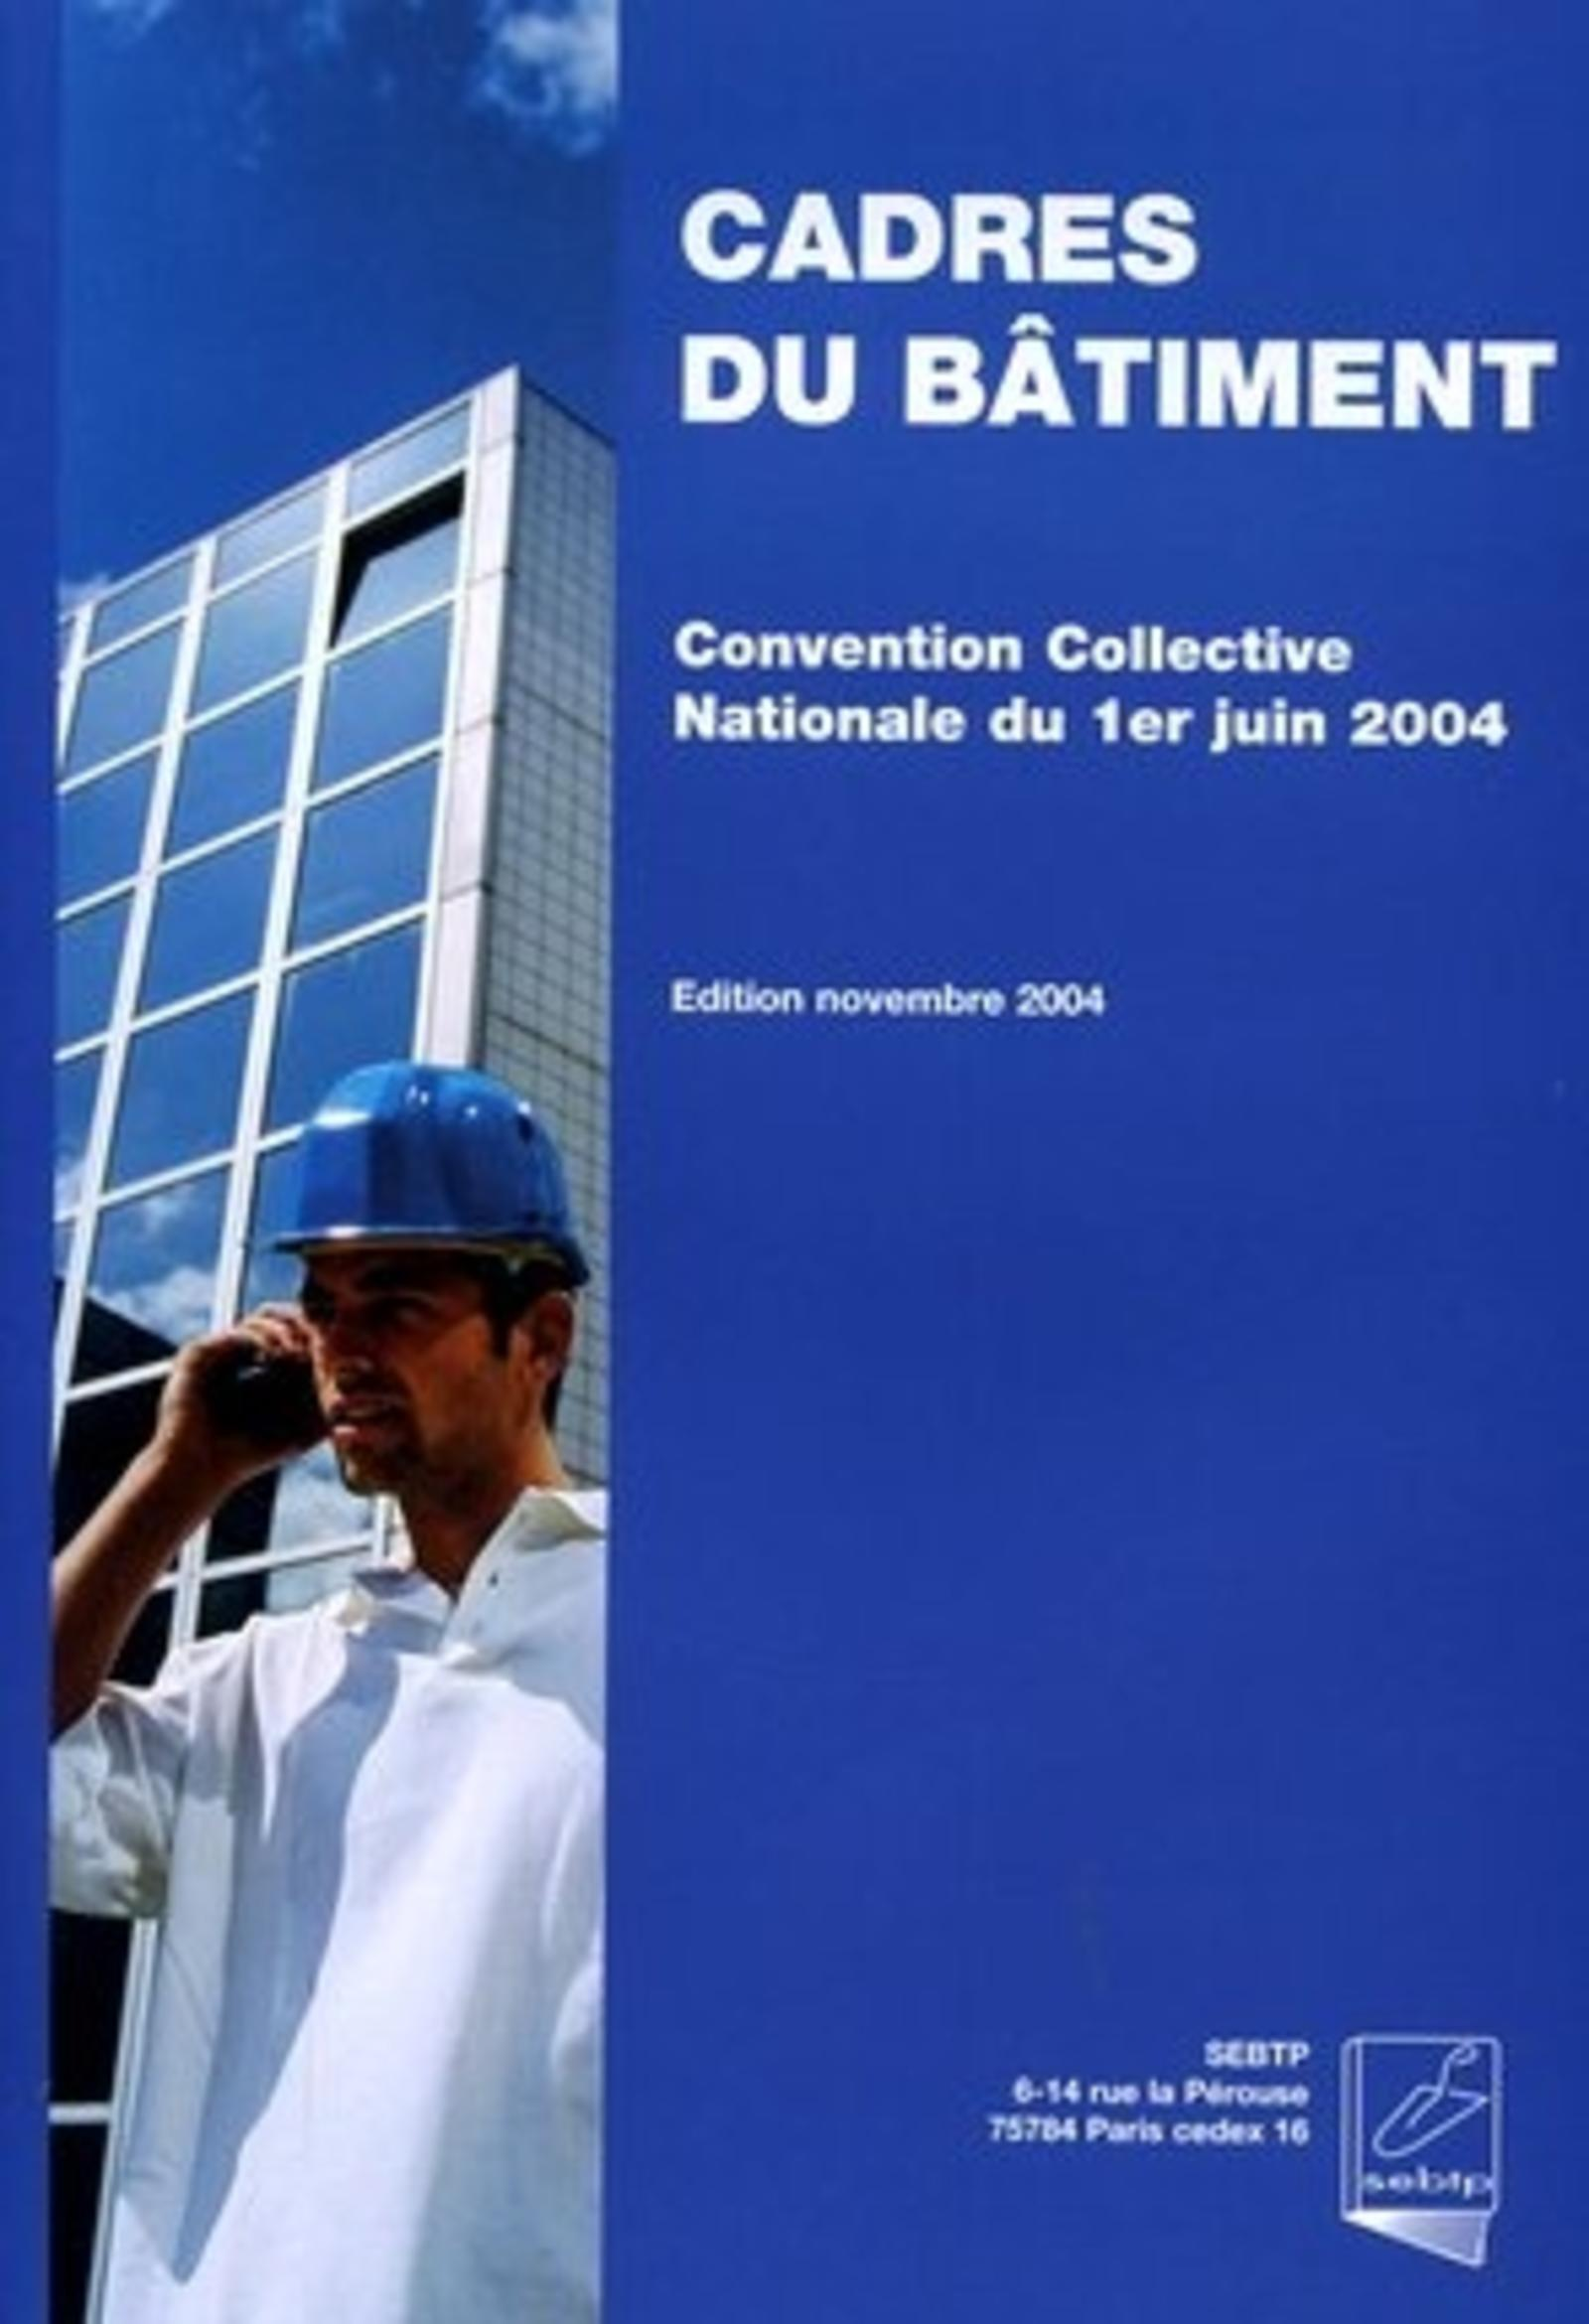 CONVENTION COLLECTIVE NATIONALE DES CADRES DU BATIMENT